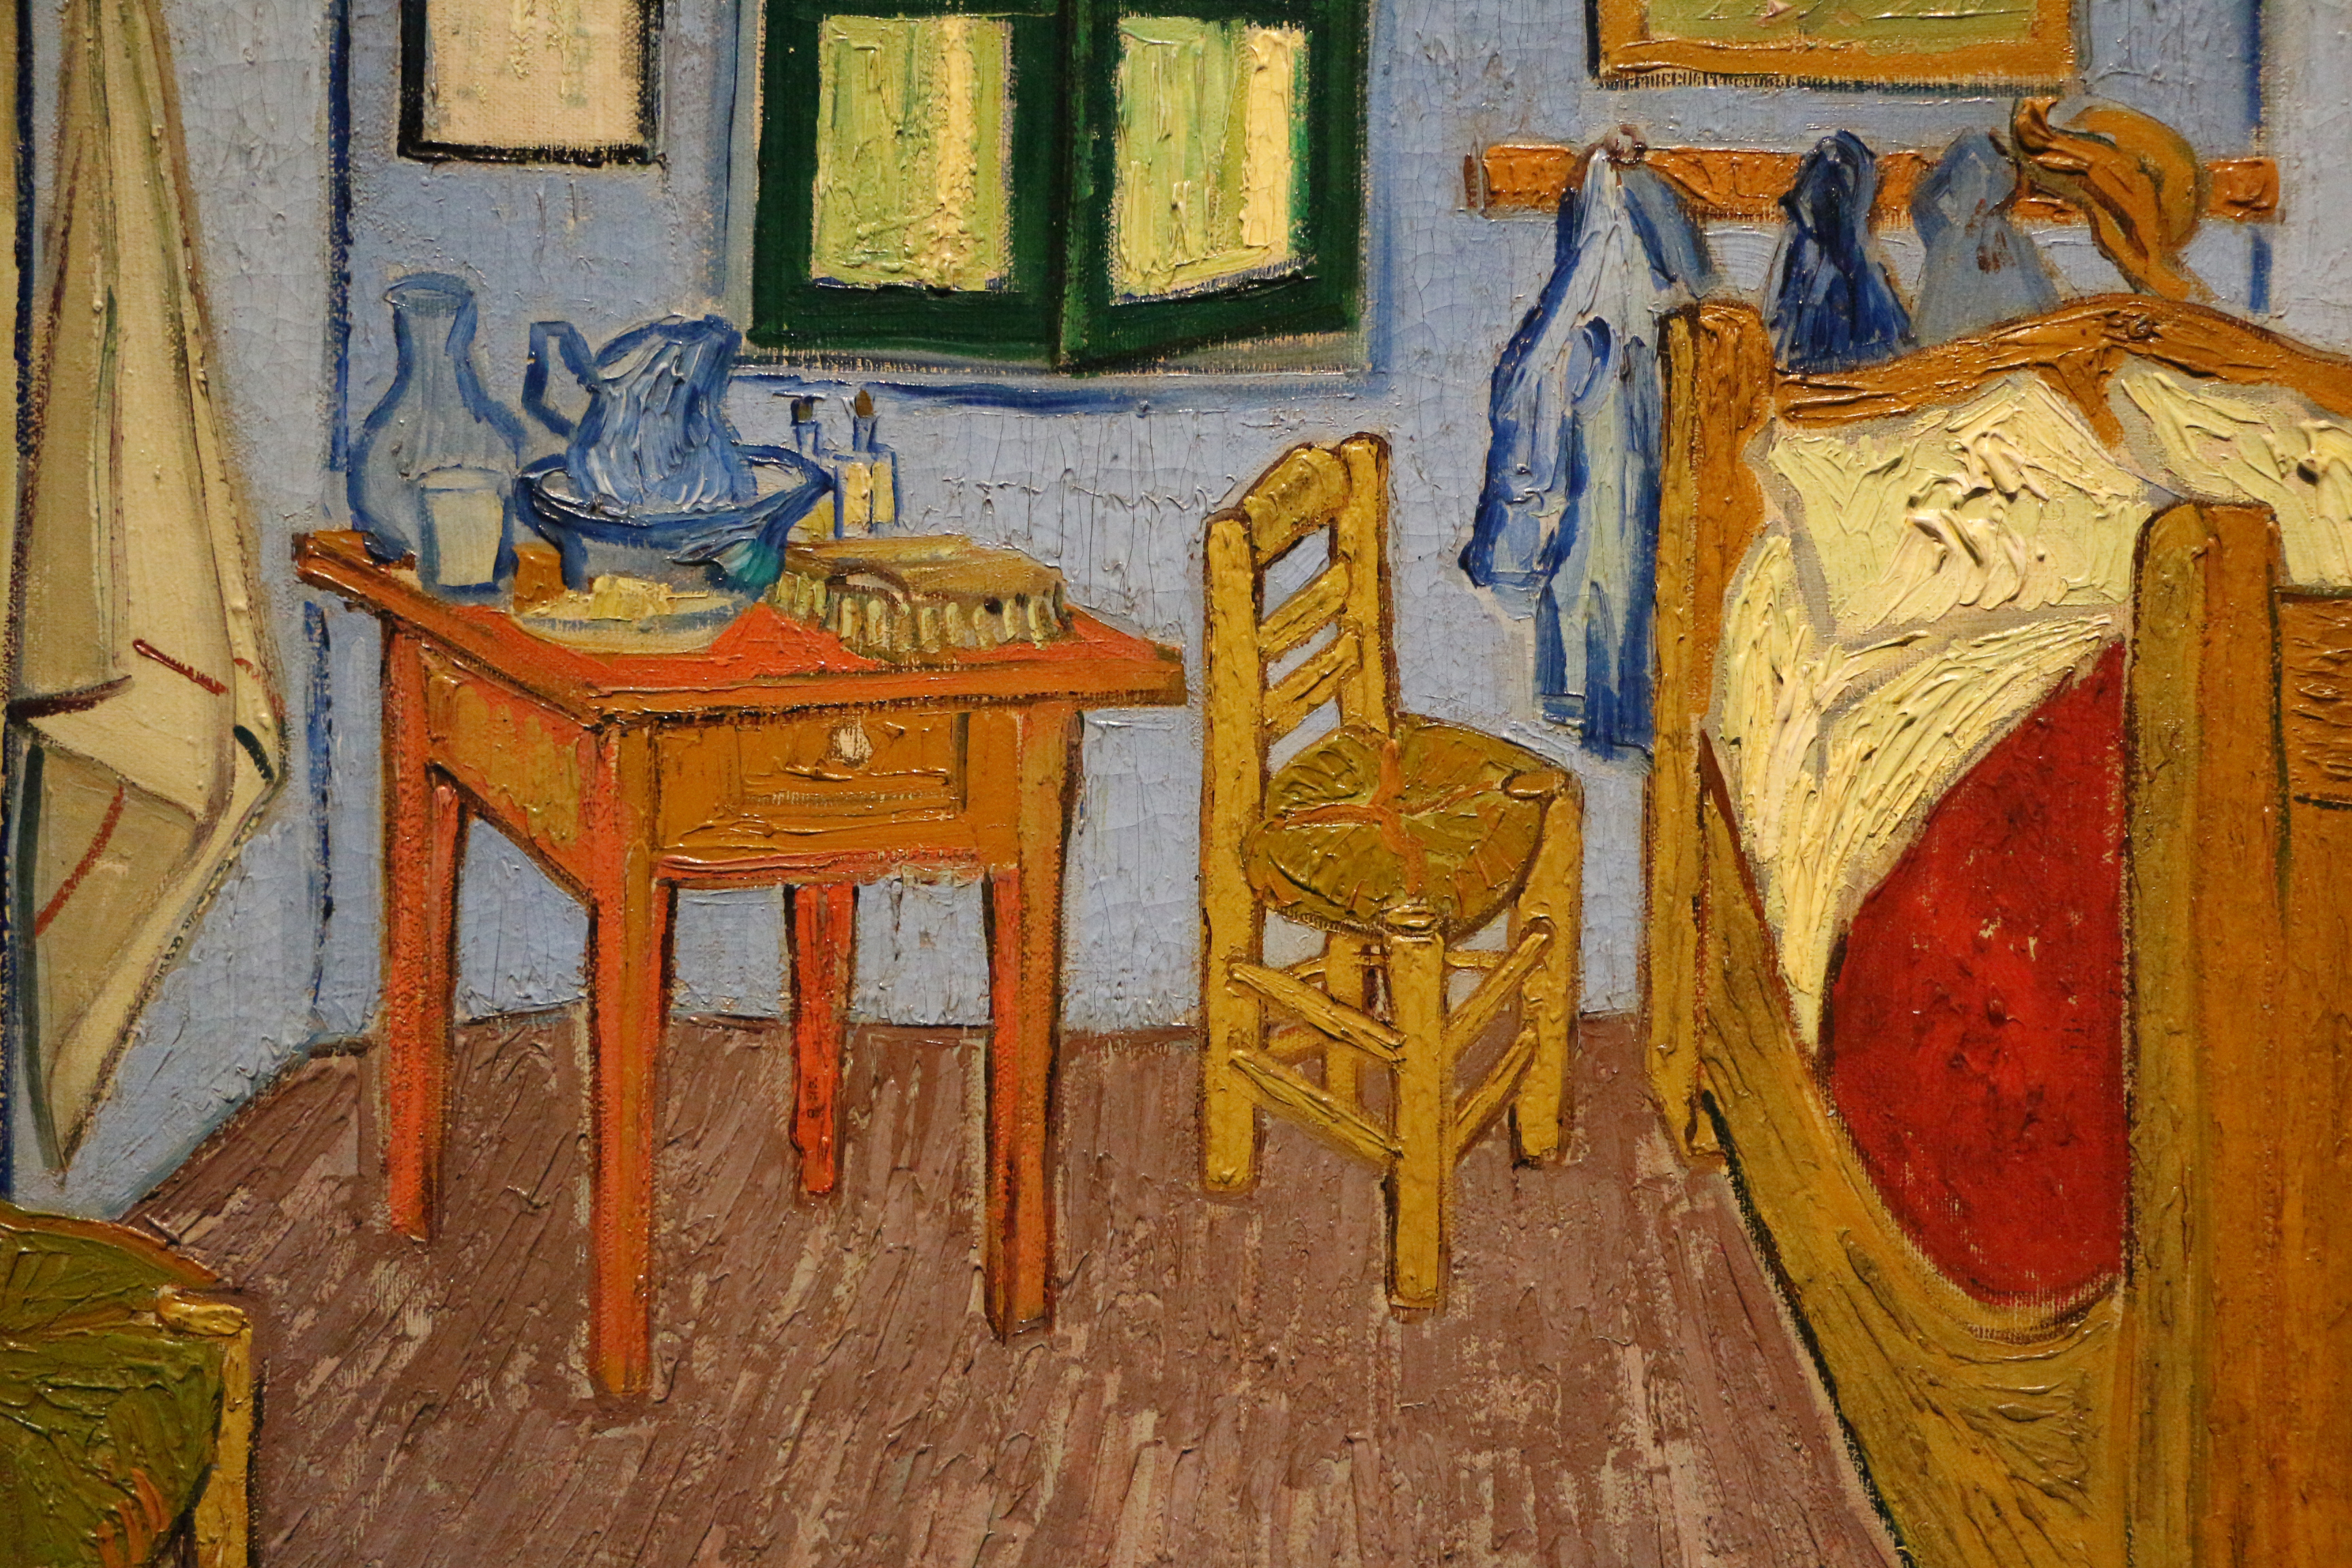 La Camera Da Letto Vincent Van Gogh La Camera Da Letto Van Gogh Wikipedia